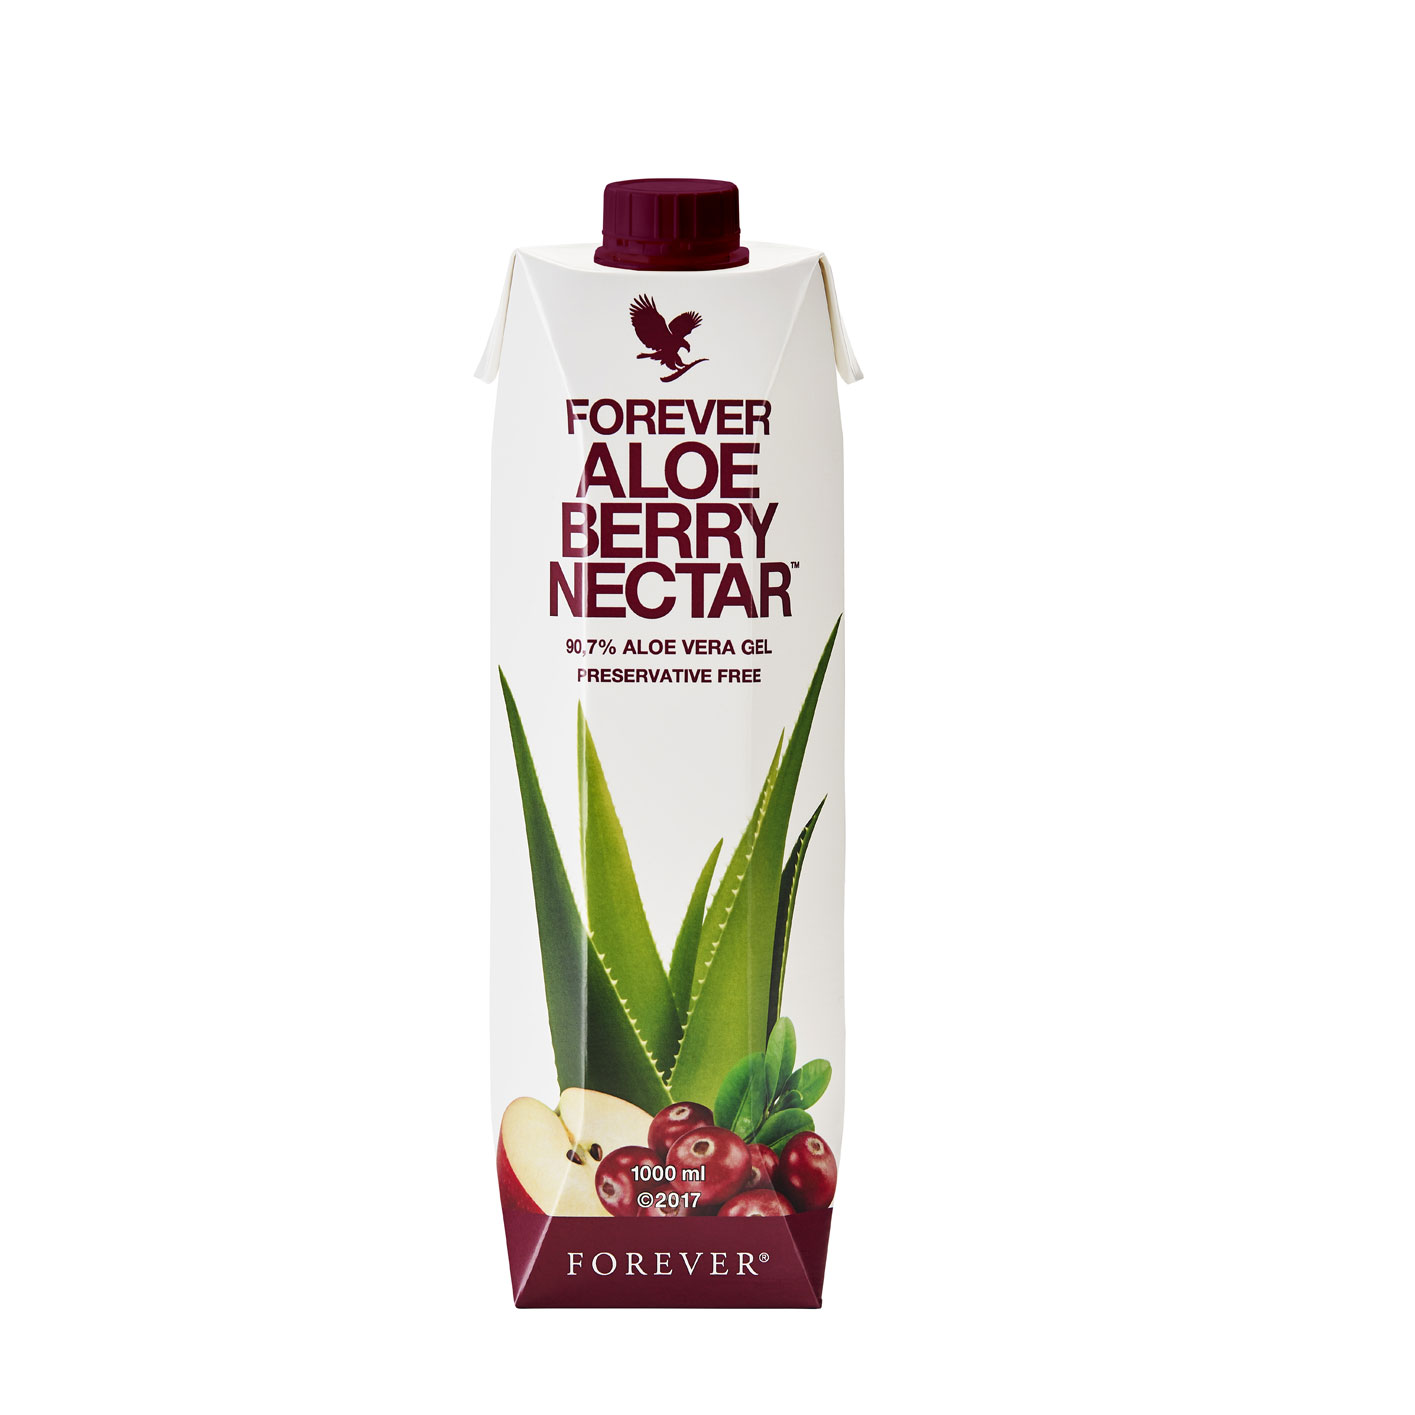 <b>COMING SOON</b>